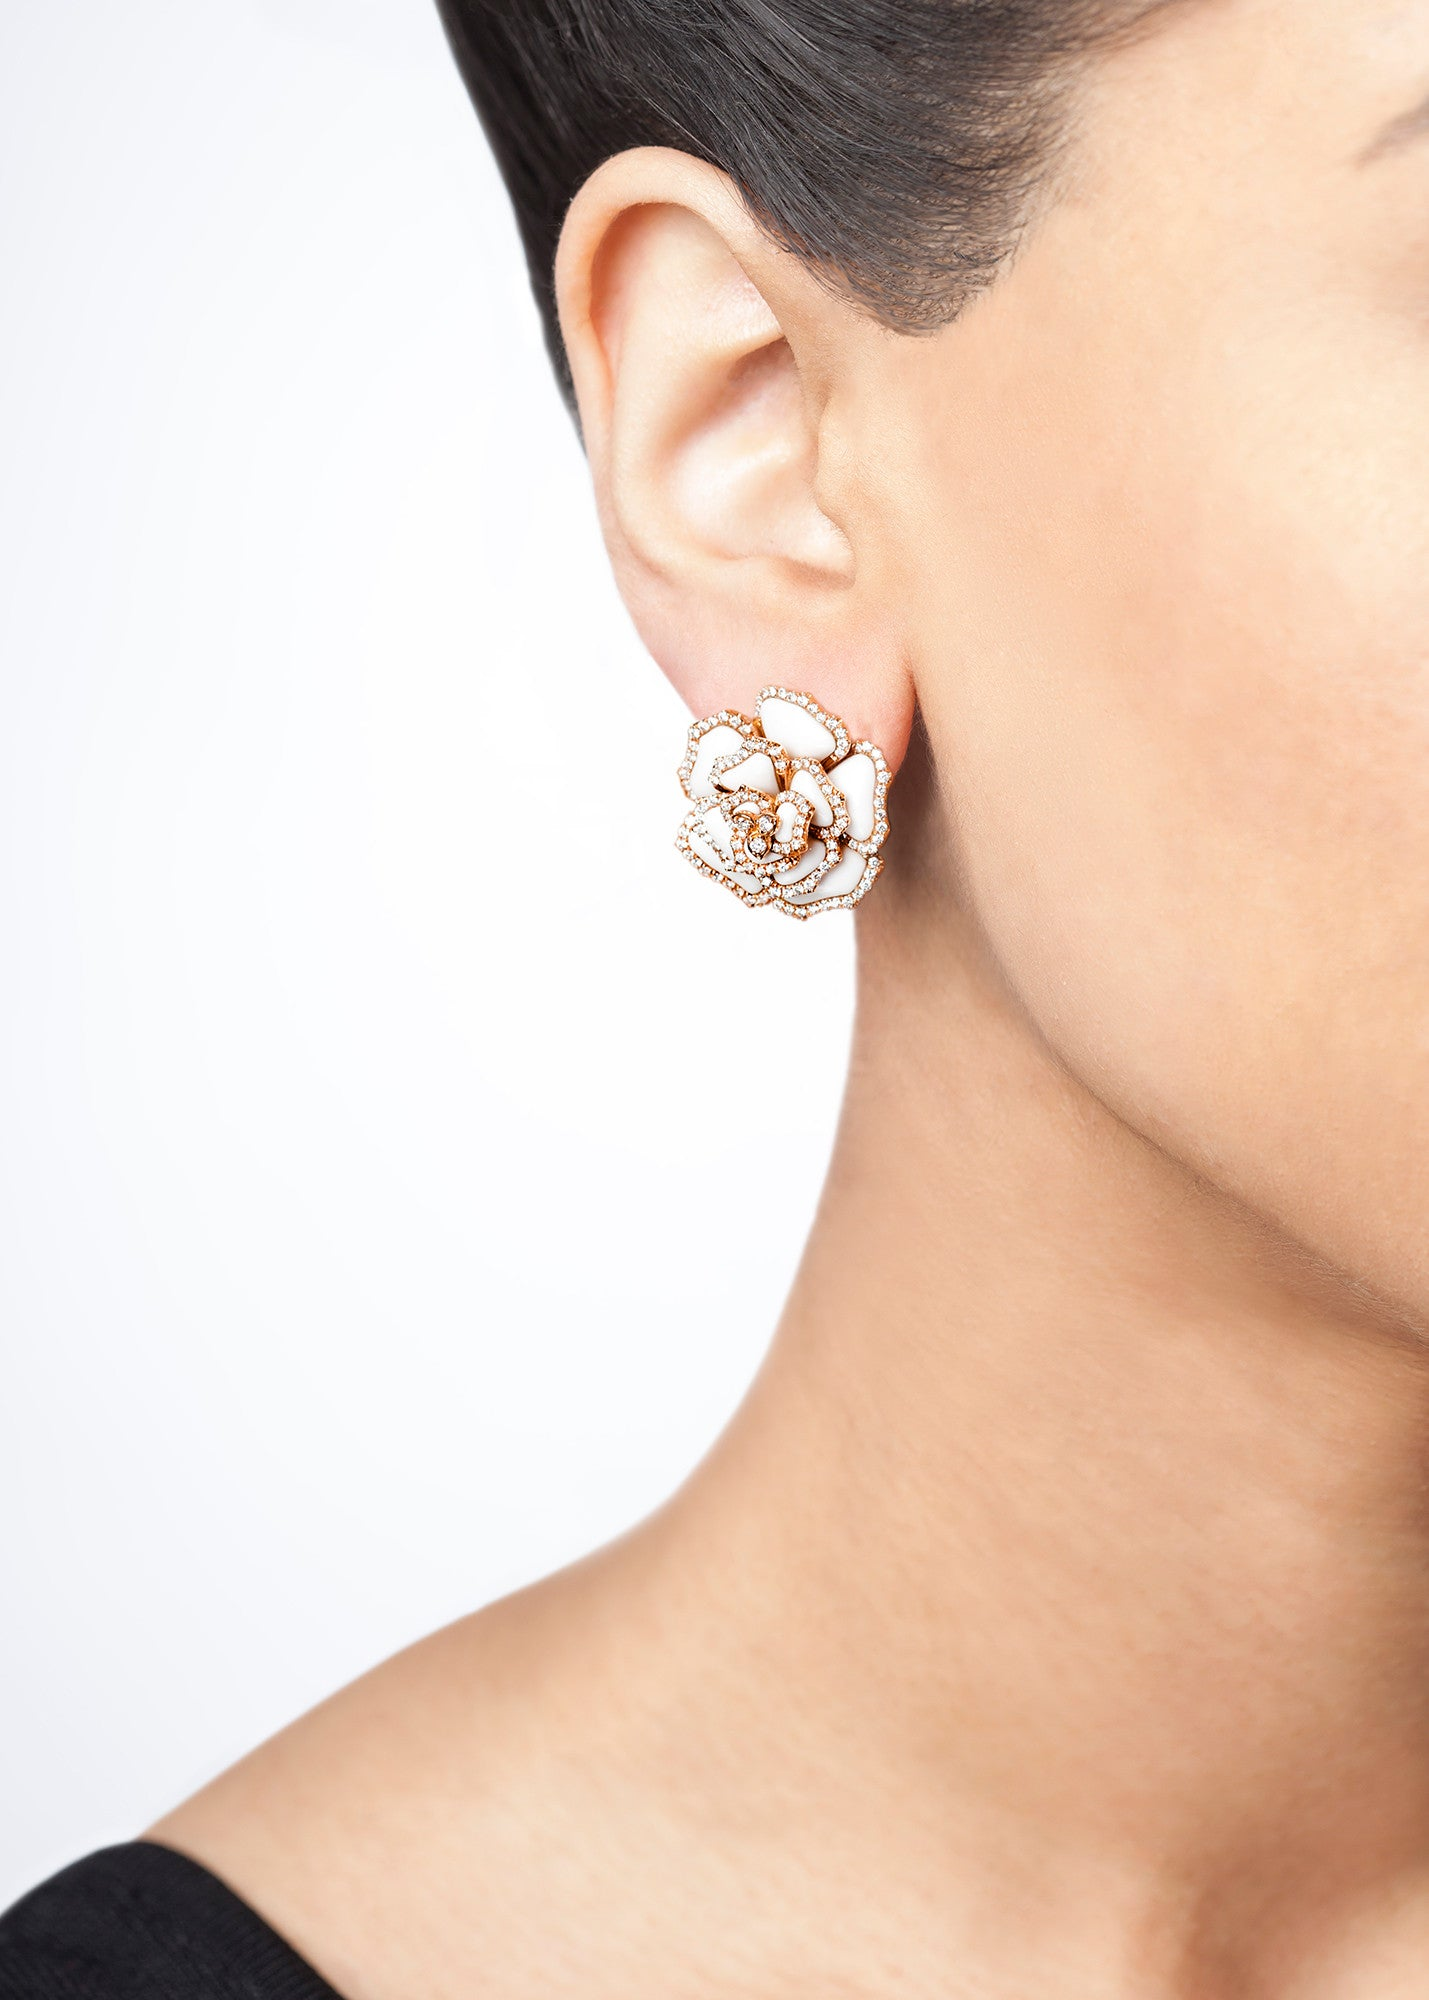 Agate & Diamond Flower Earrings (White/Black)-50% OFF!